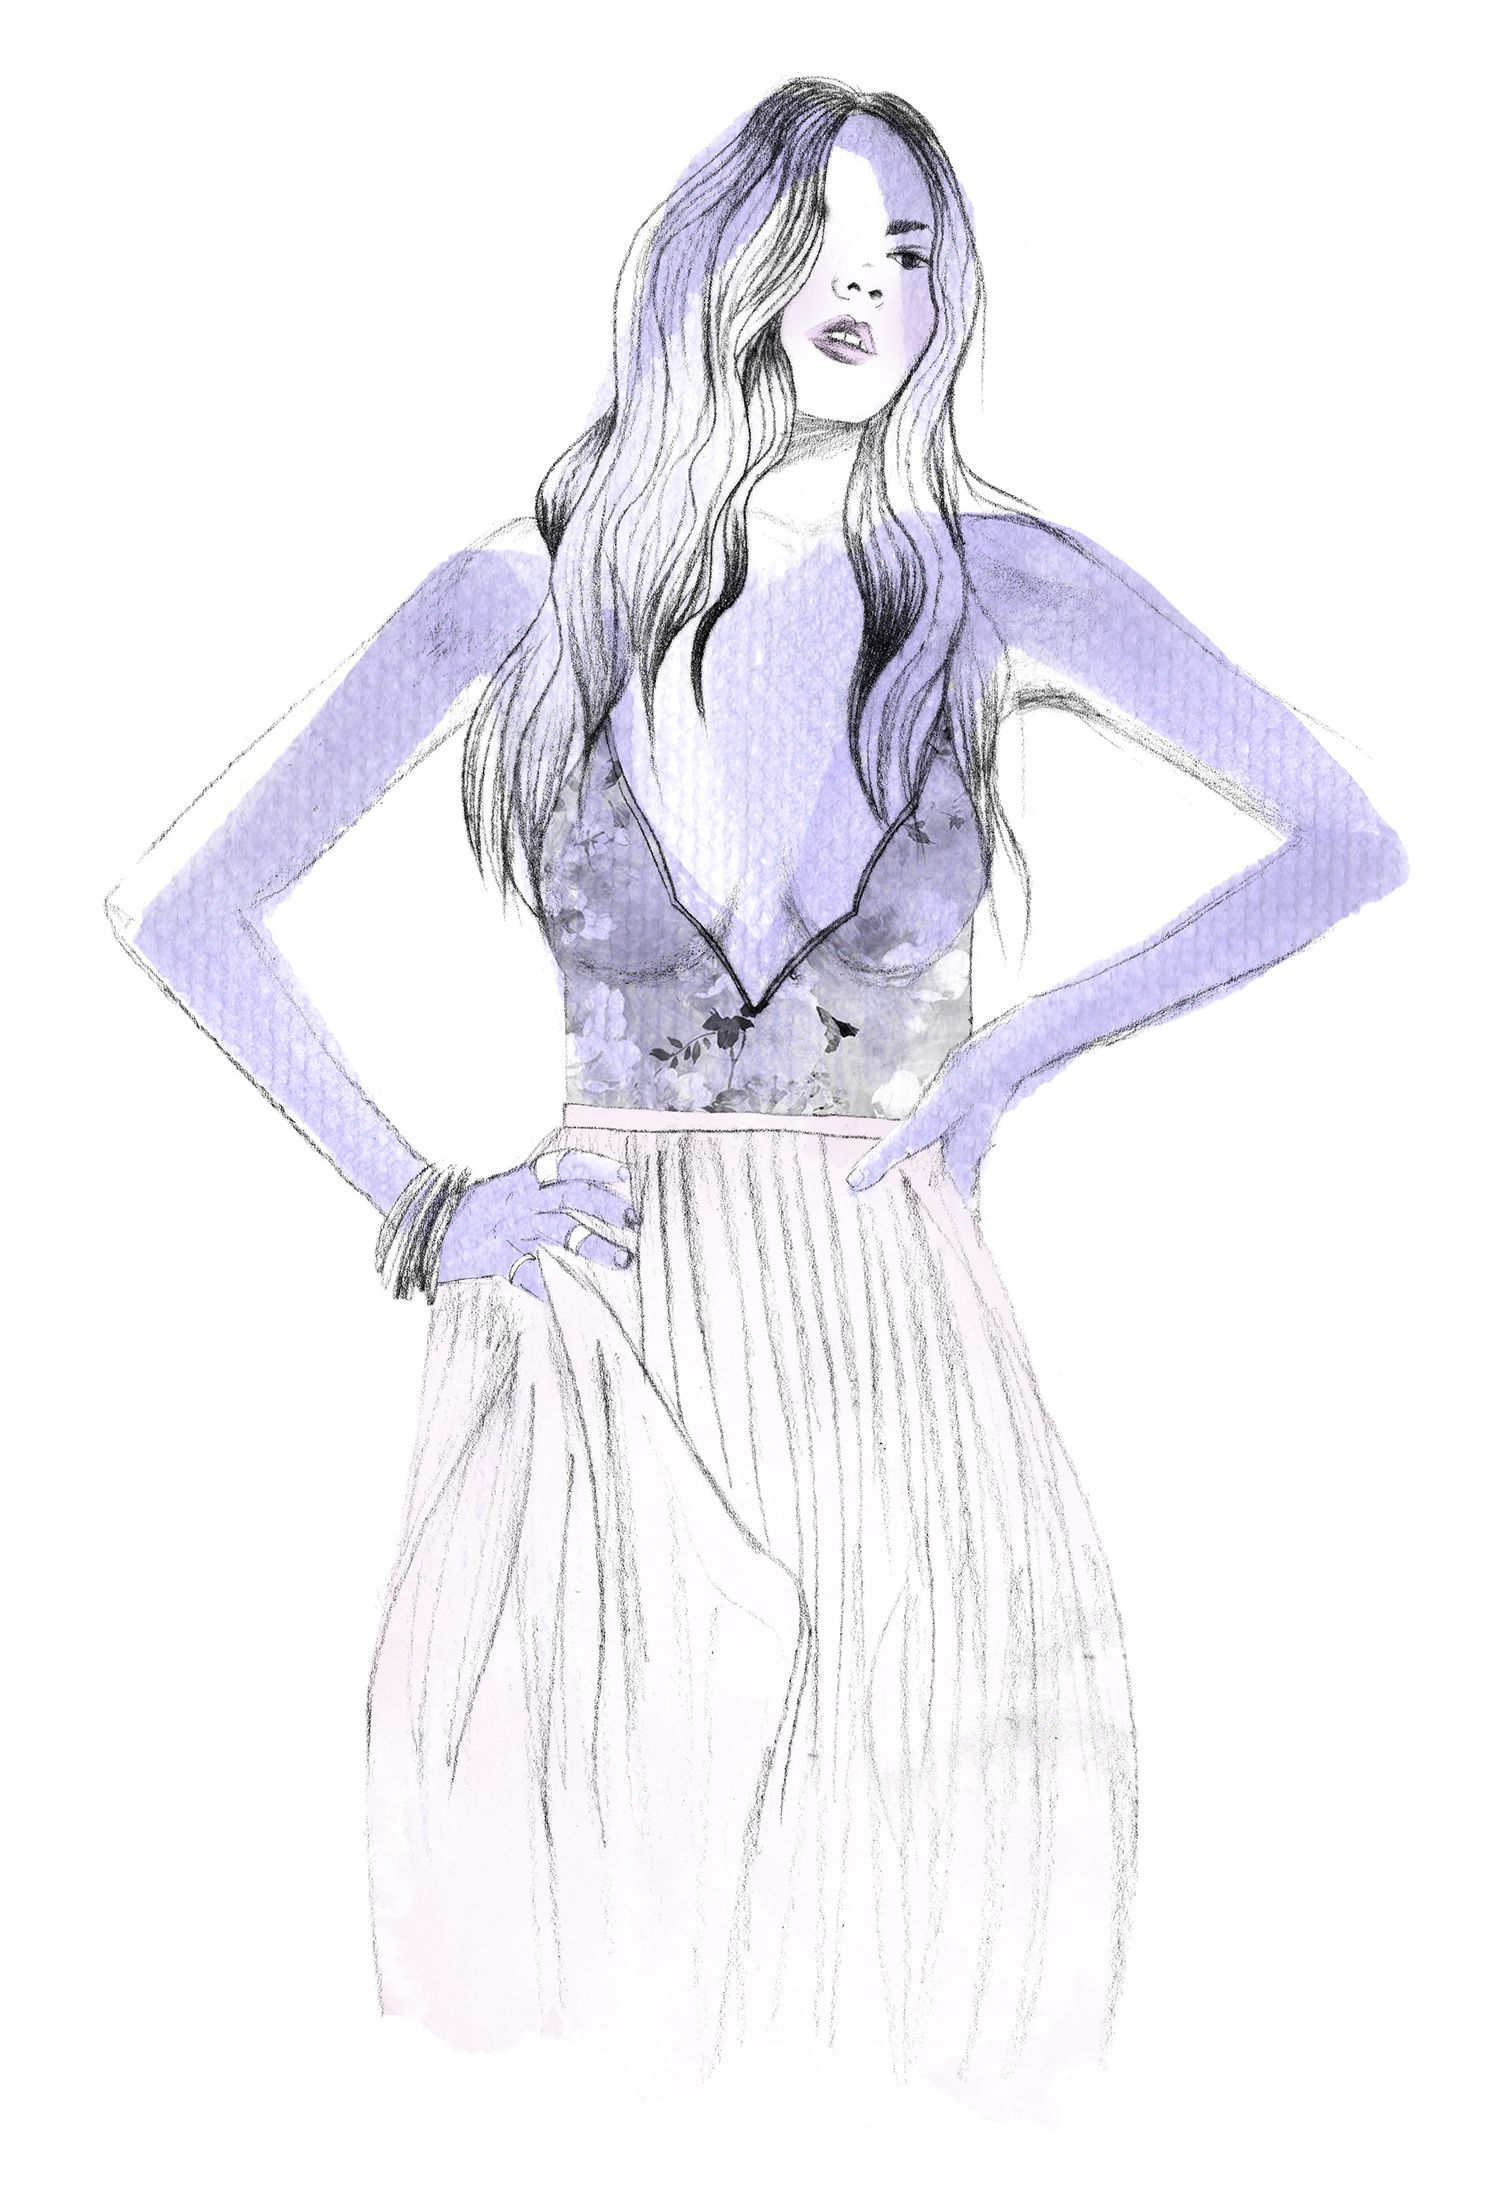 BELLE OF THE BALL MAXI DRESS The floral dresses I die for...  #catalinagraphic #watercolor #fashion #illustration